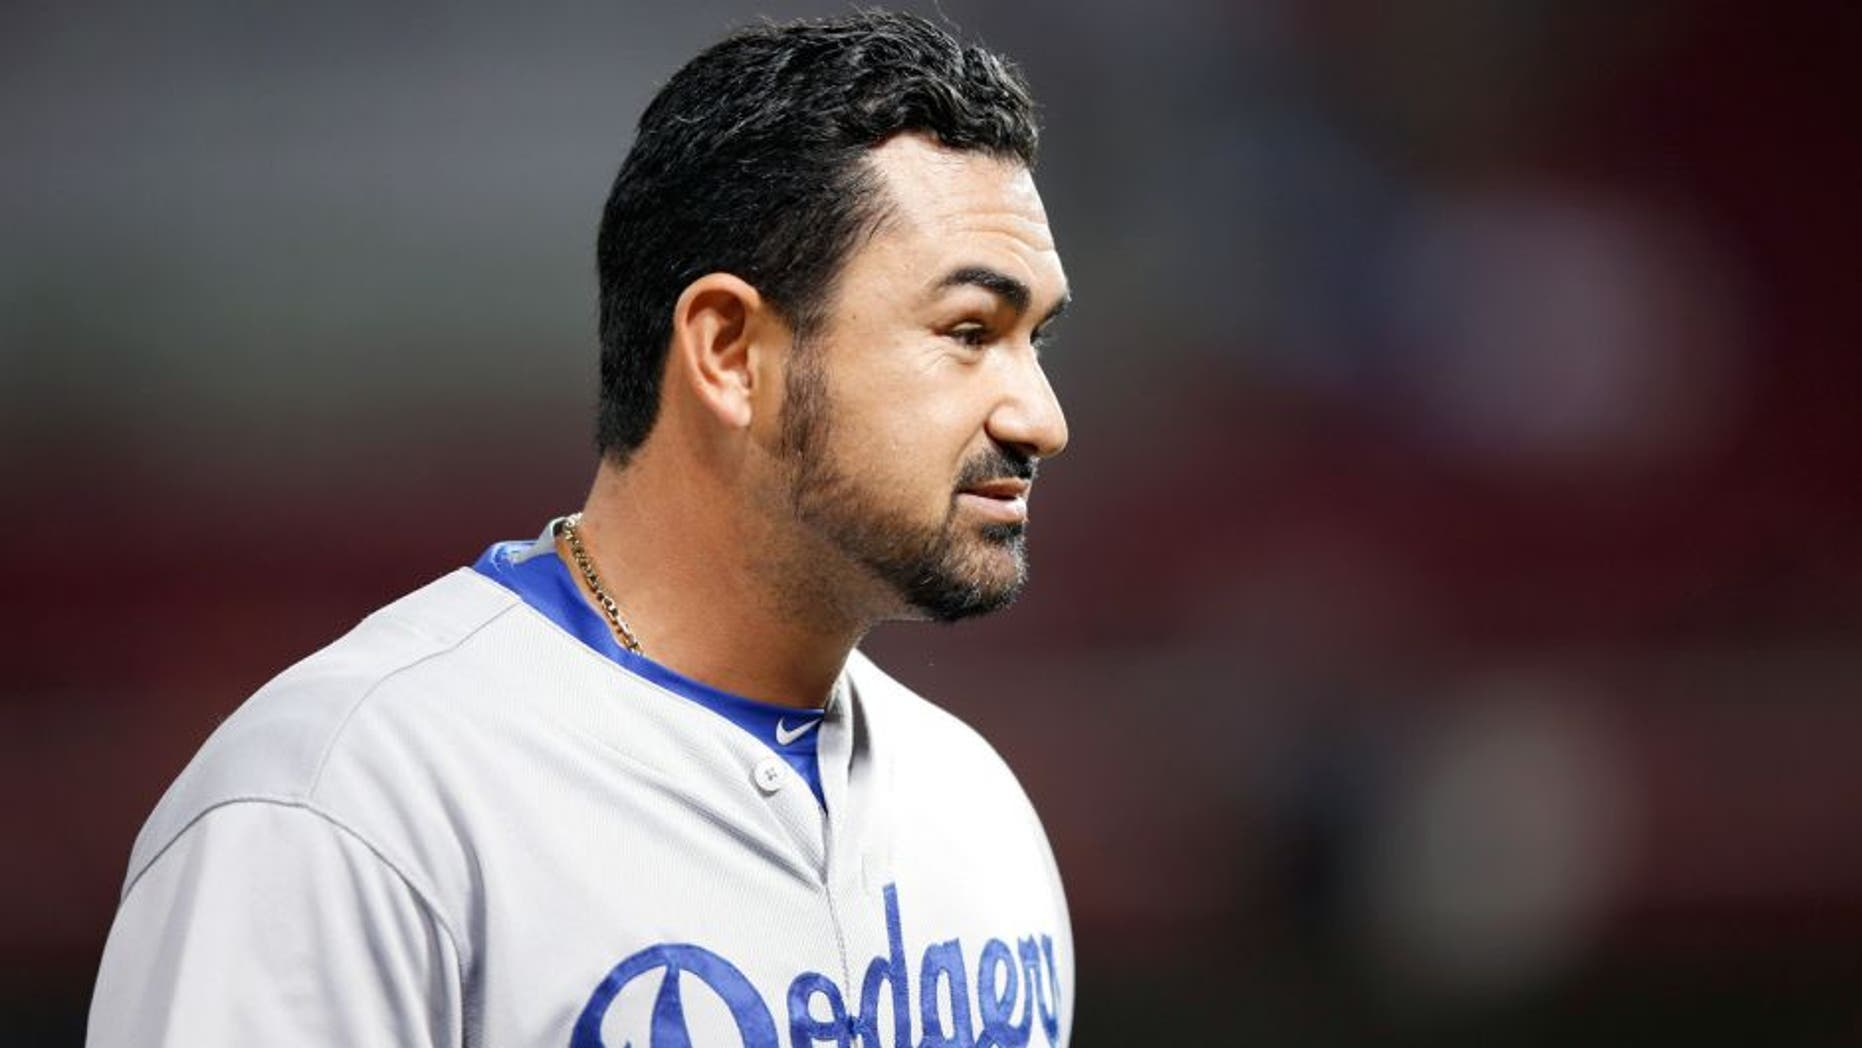 CINCINNATI, OH - AUGUST 26: Adrian Gonzalez #23 of the Los Angeles Dodgers looks on against the Cincinnati Reds during the game at Great American Ball Park on August 26, 2015 in Cincinnati, Ohio. The Dodgers defeated the Reds 7-4. (Photo by Joe Robbins/Getty Images)